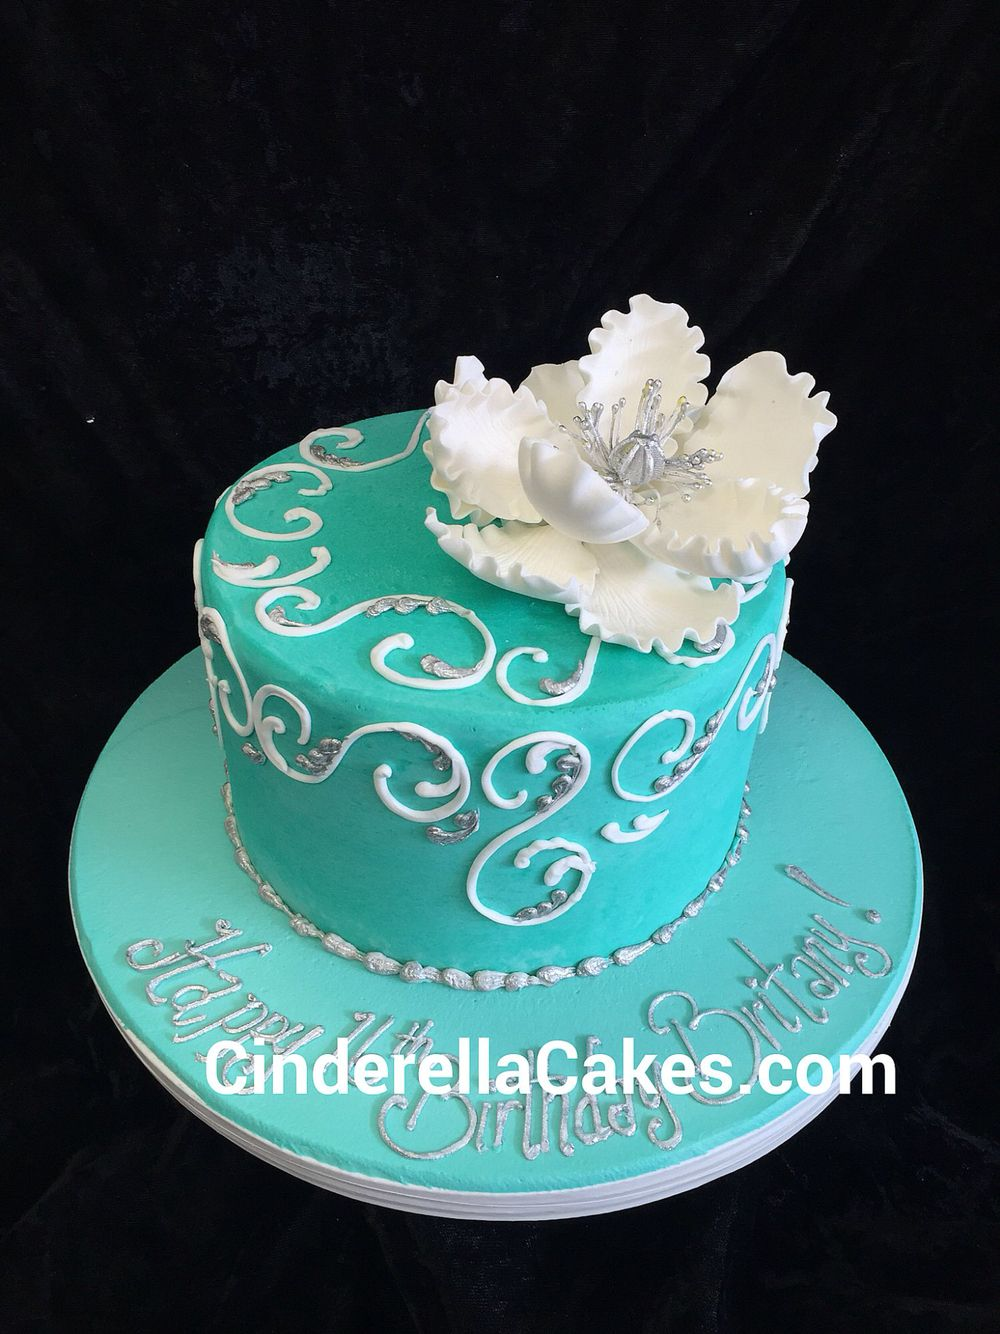 A pretty buttercream birthday cake in the infamous tiffany blue